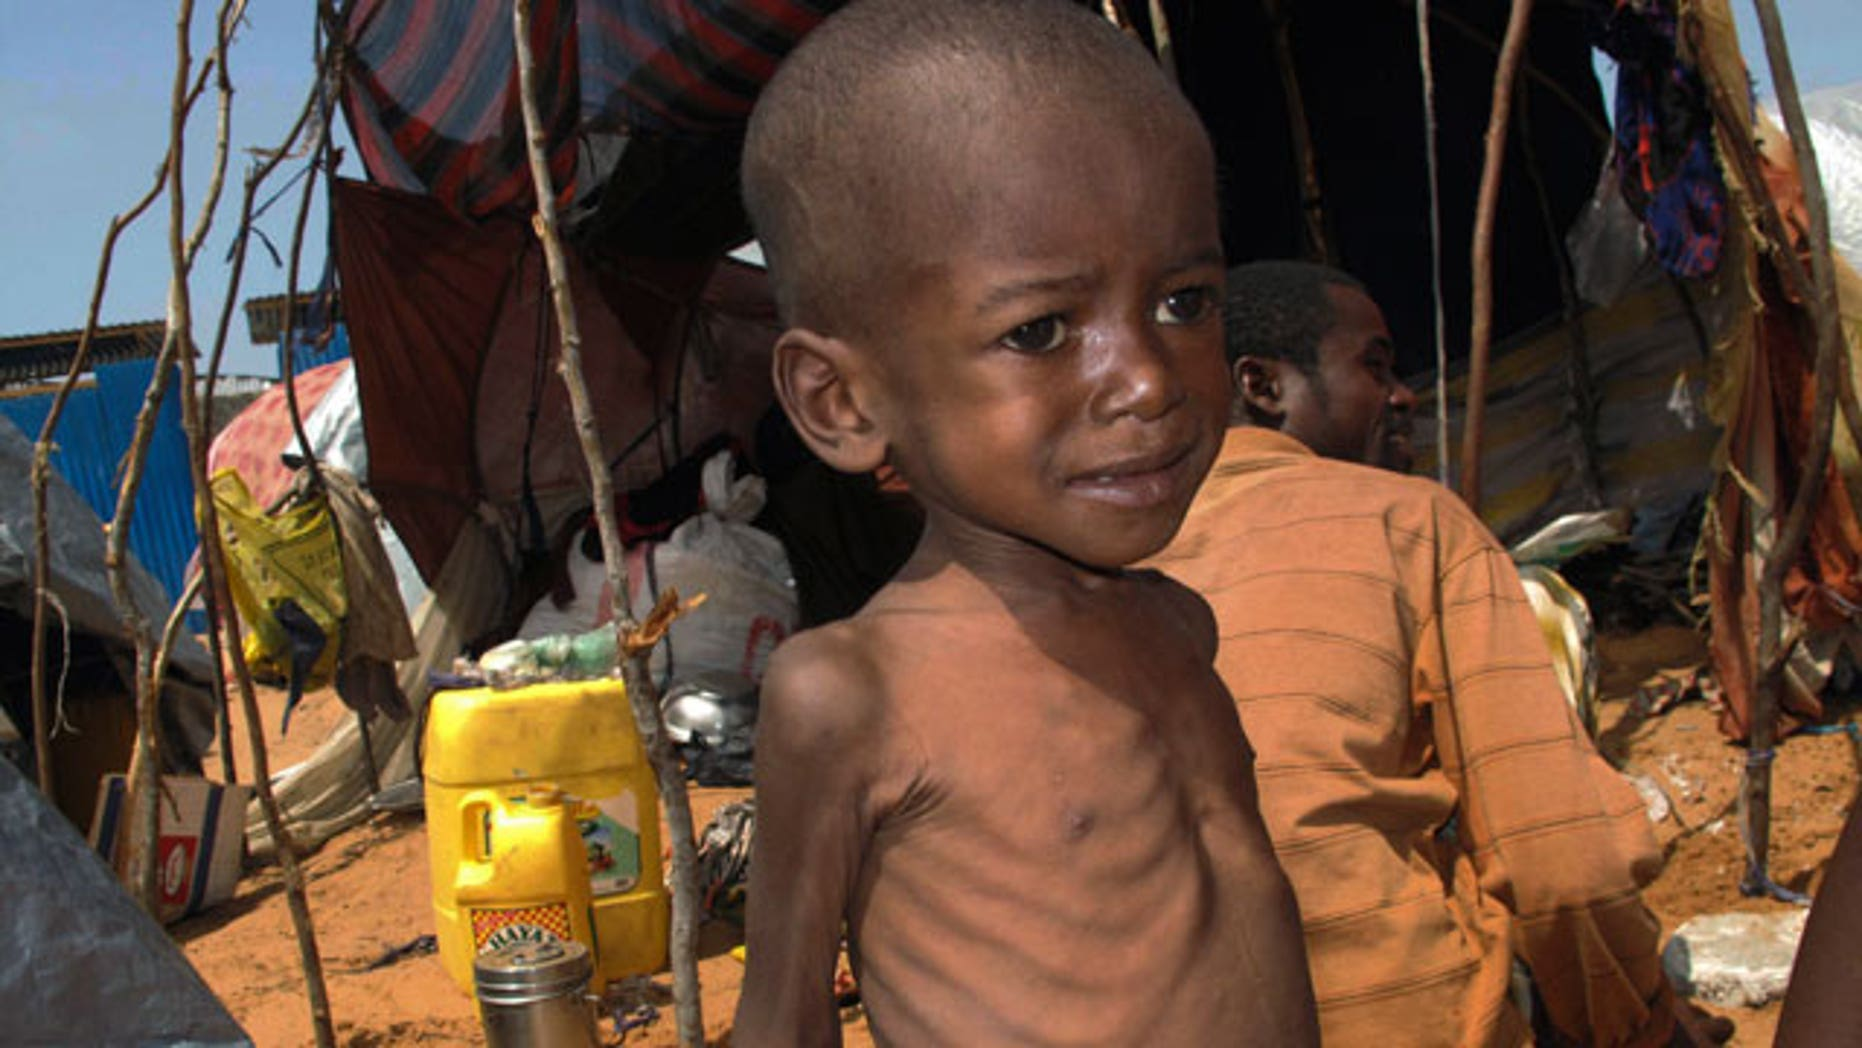 A Somali malnourished child from southern Somalia stands in front of a makeshift shelter in Mogadishu, Somalia, Saturday, July 23, 2011.